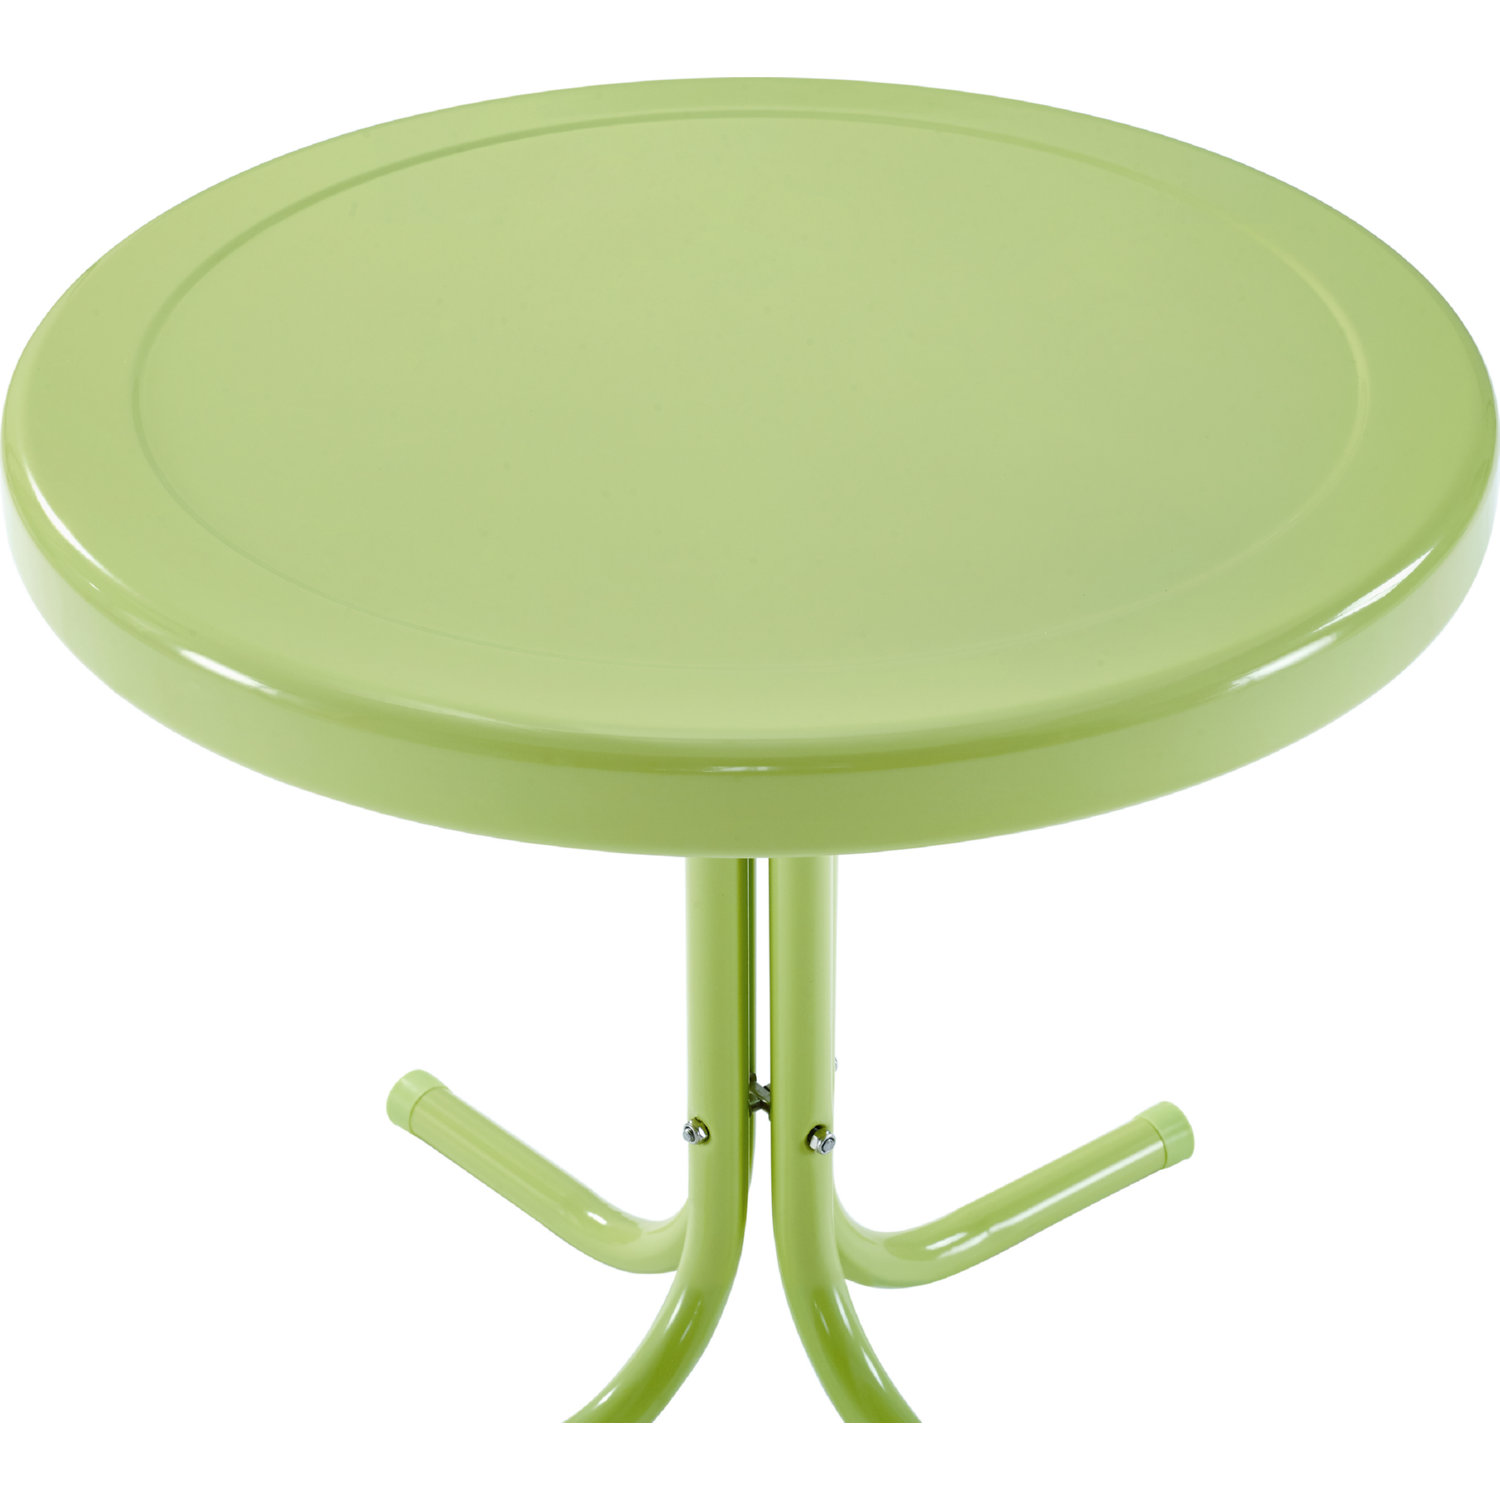 Retro Metal Side Table In Key Lime Green